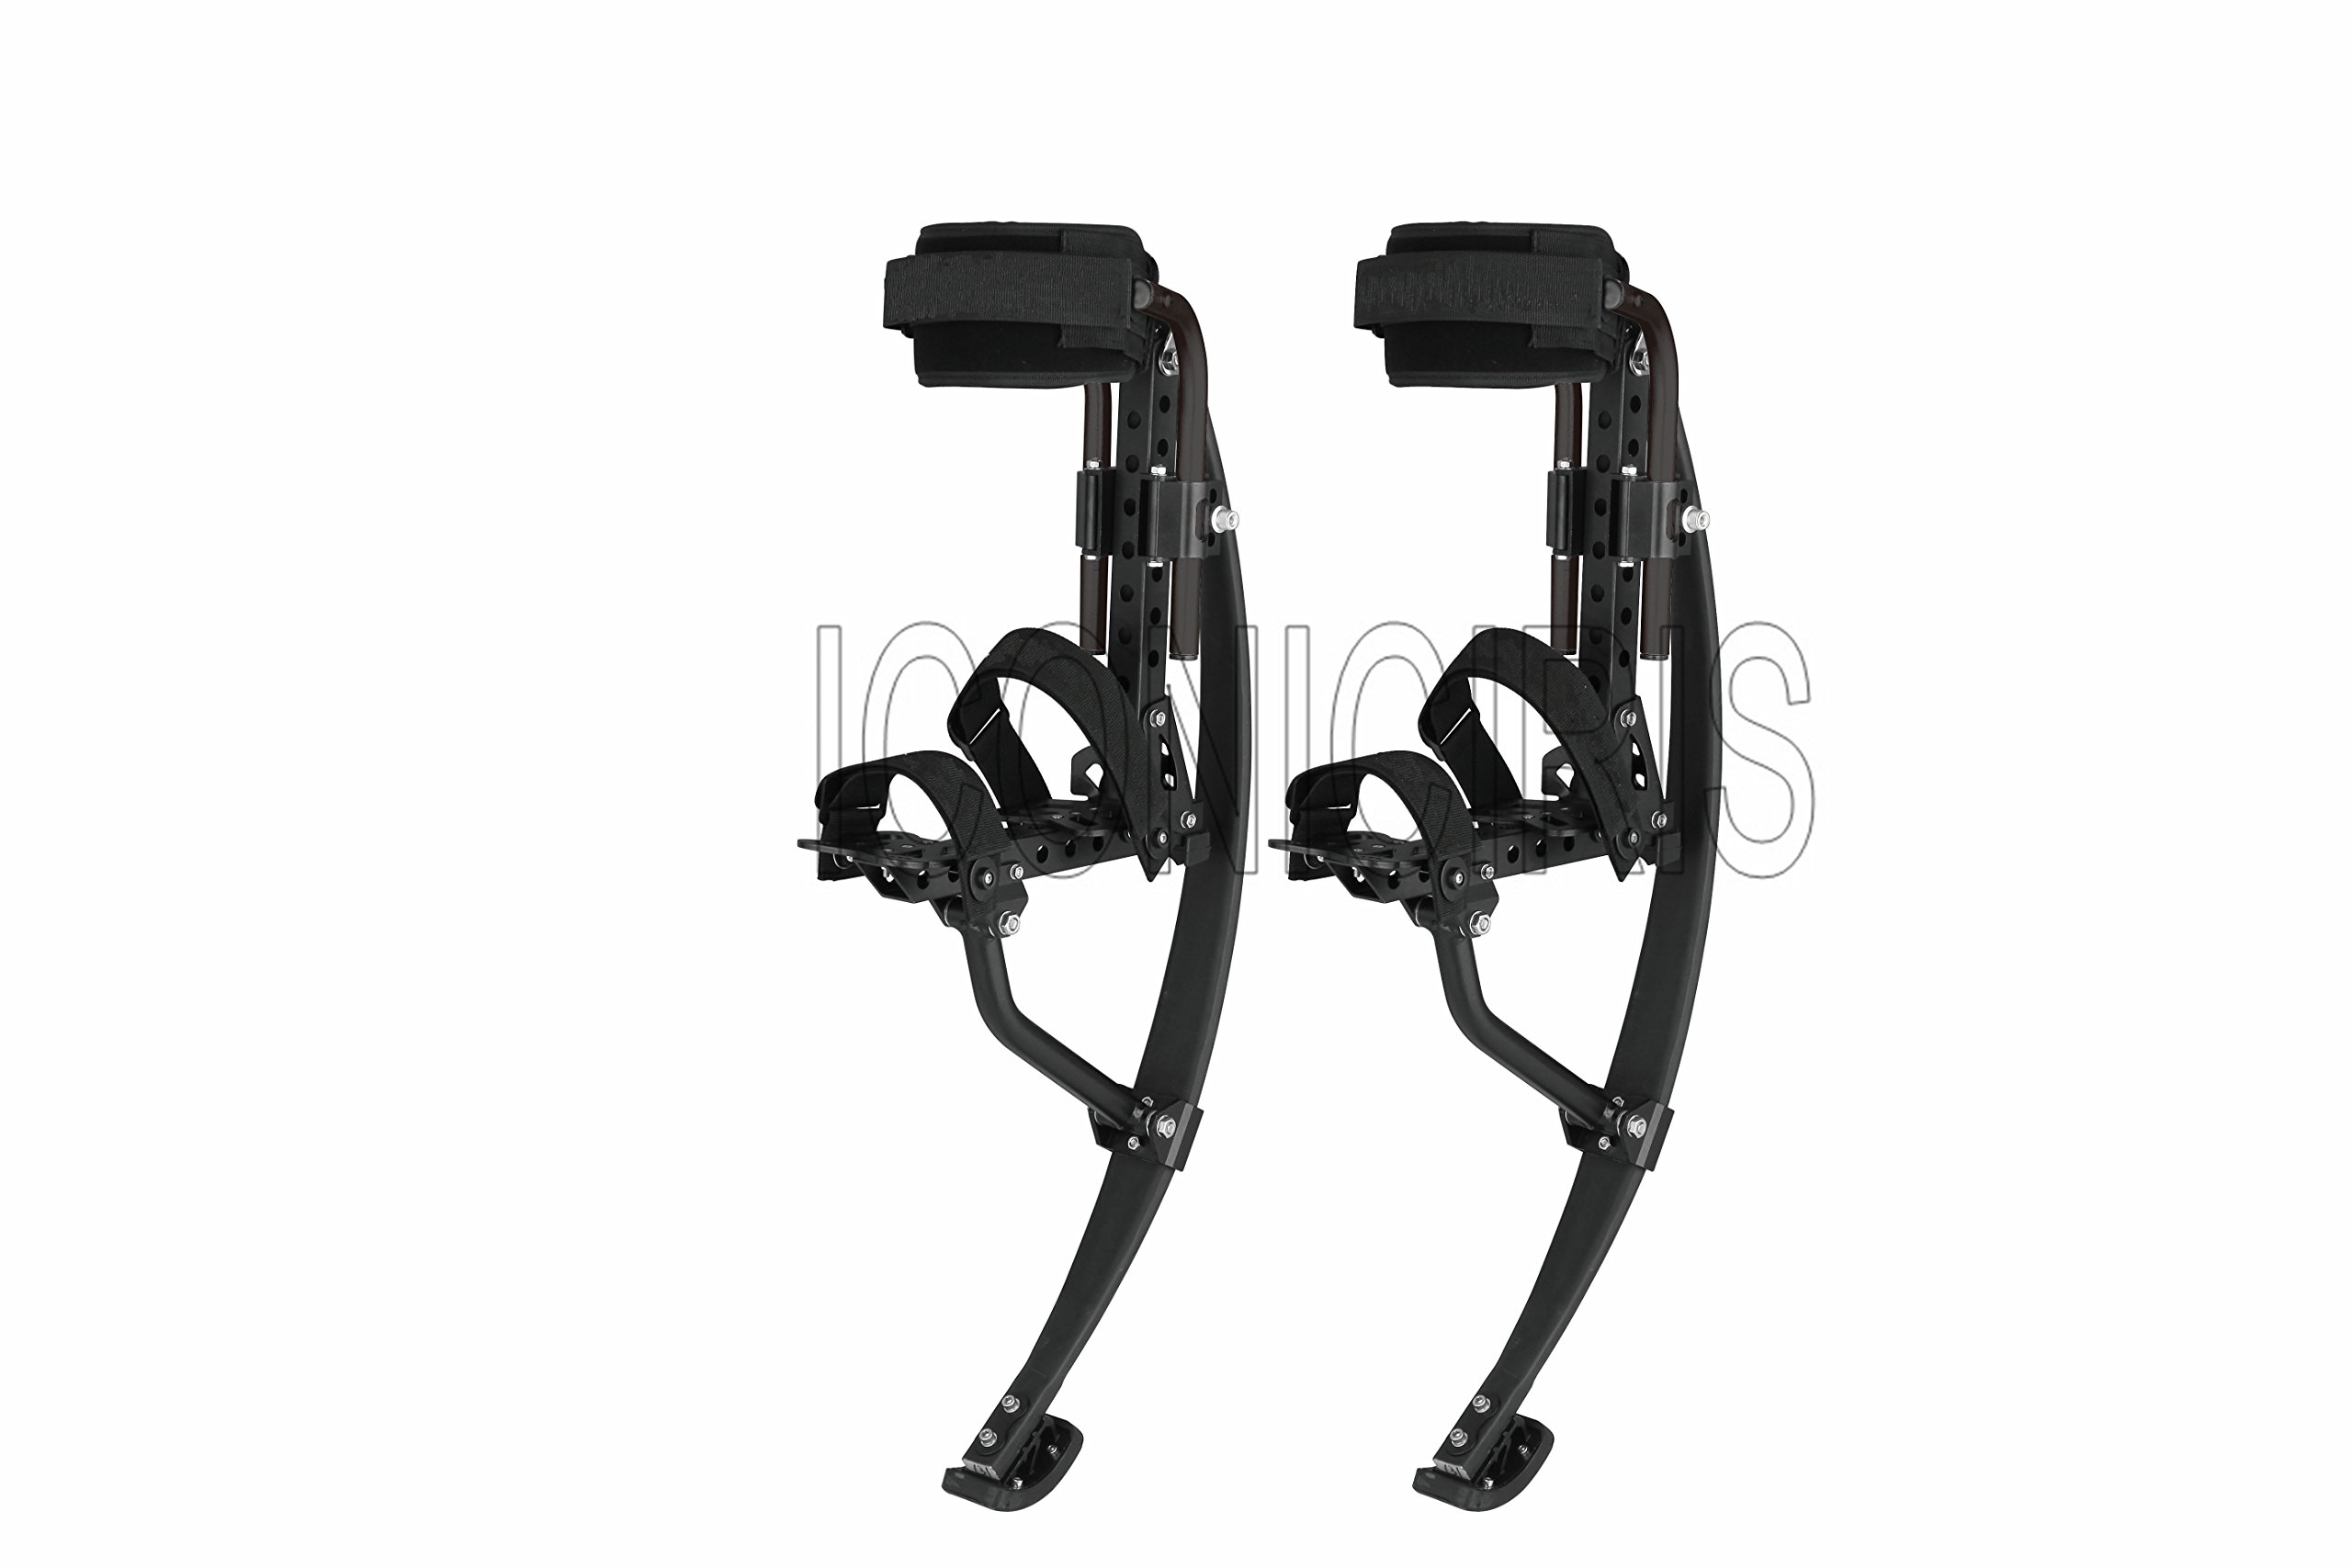 Skyrunner 2018 NEW MODEL Jumping Stilts POGO STILTS Kangaroo Shoes Bouncing Spring stilts Men Women Fitness Exercise Black (Load Weight:110-120KG/243-265LBS) by Skyrunner